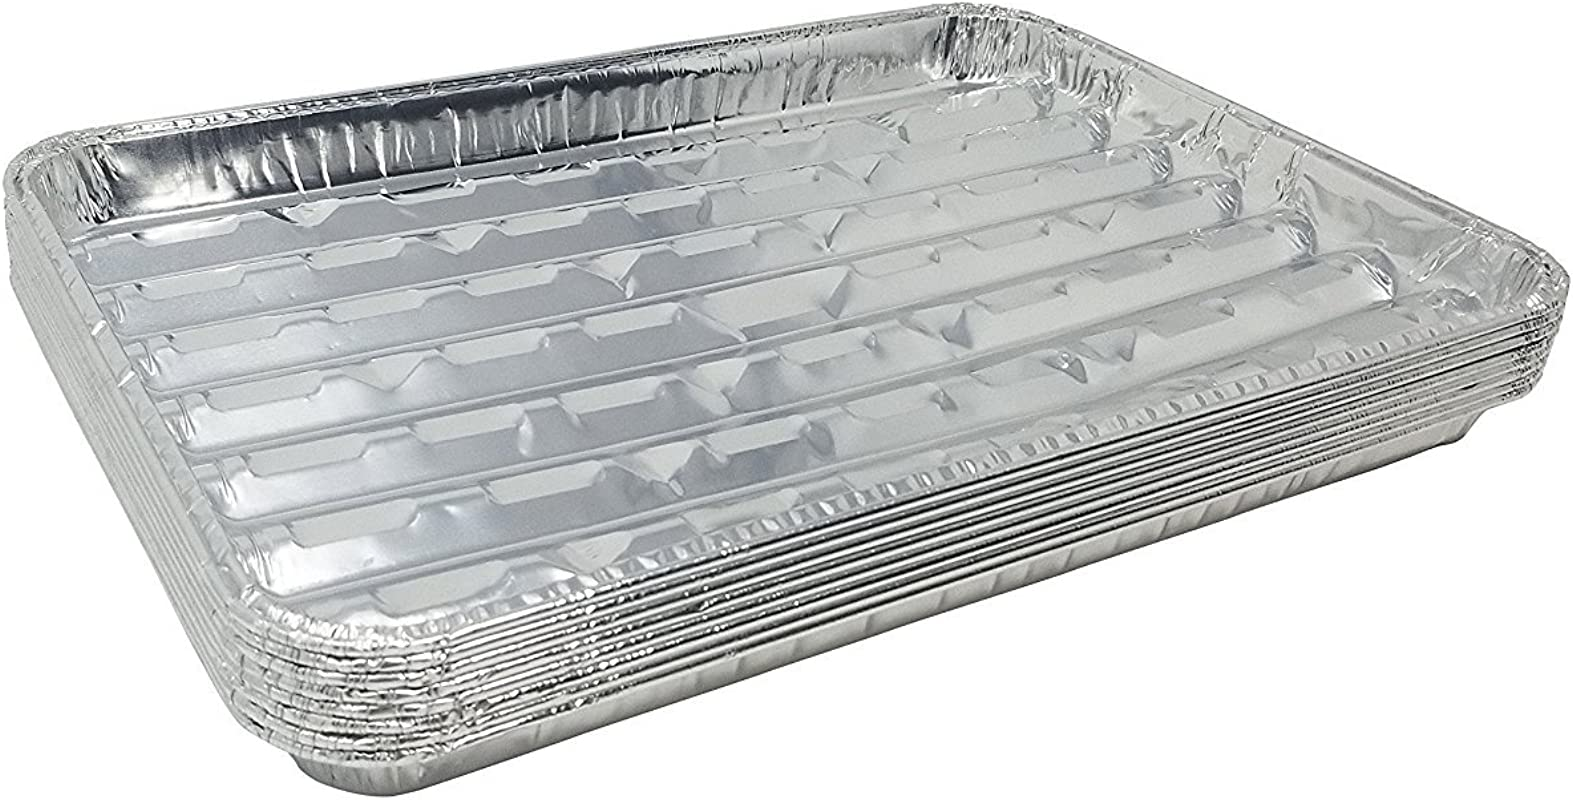 Pack Of 50 Disposable Aluminum Broiler Pans Good For BBQ Grill Trays Multi Pack Of Durable Aluminum Sheet Pans Ribbed Bottom Surface 13 40 X 9 X 0 85